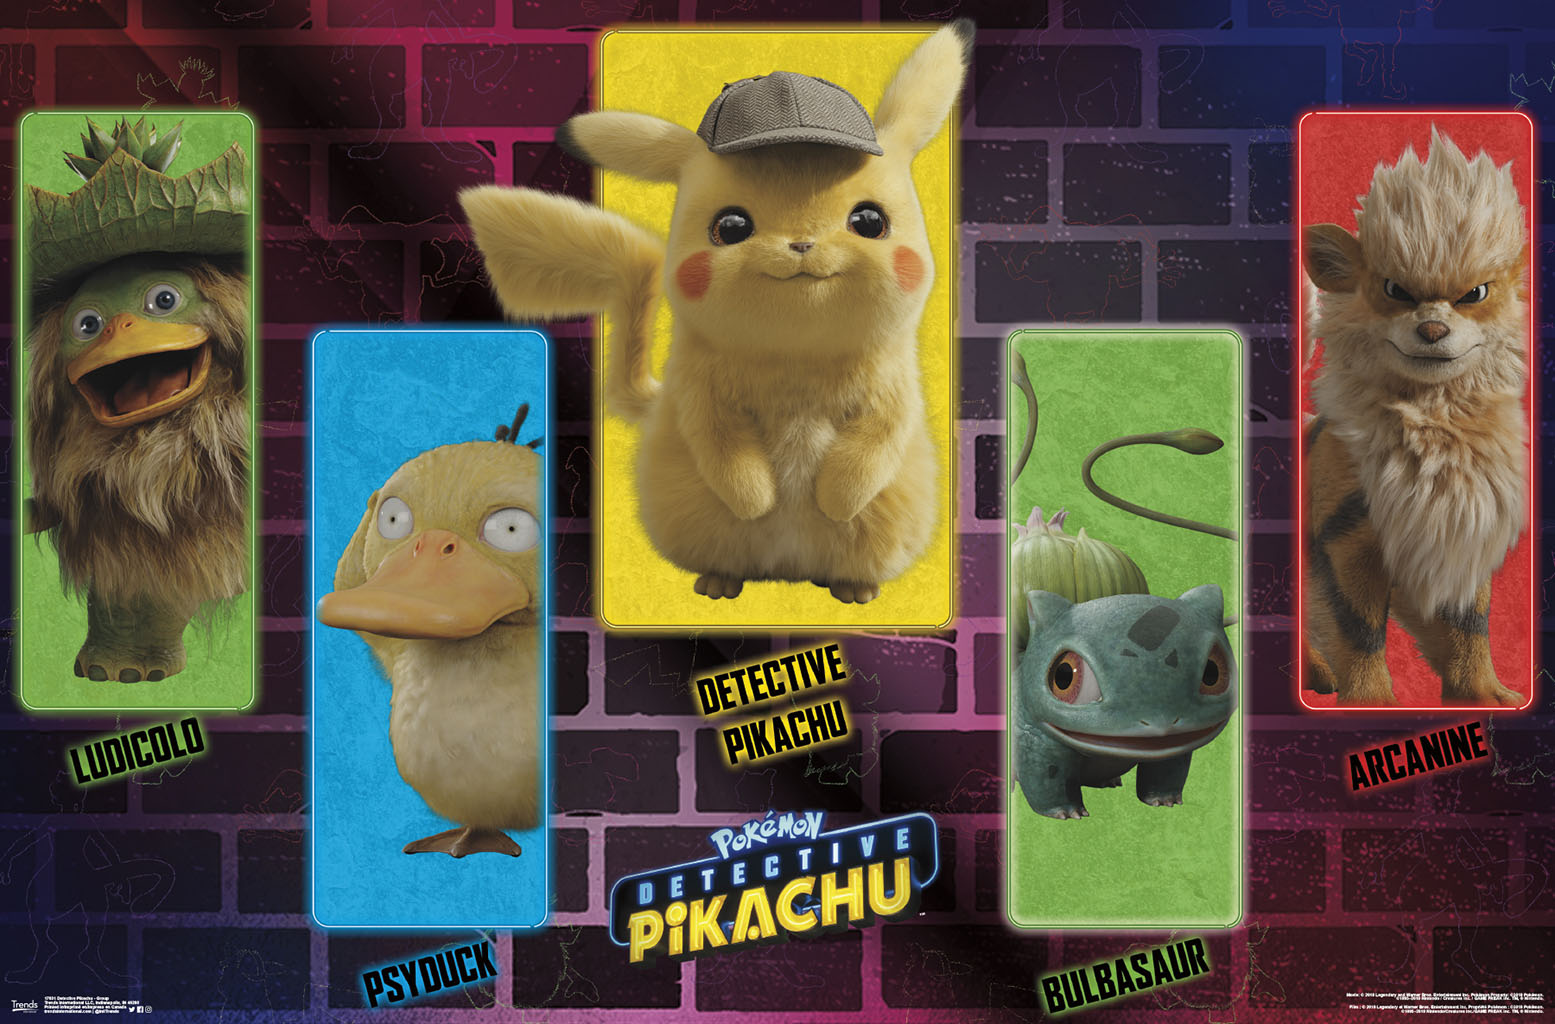 """*New* Pokemon DETECTIVE PIKACHU Movie Neon Wall POSTER 22.375/"""" x 34/"""" Inches!"""